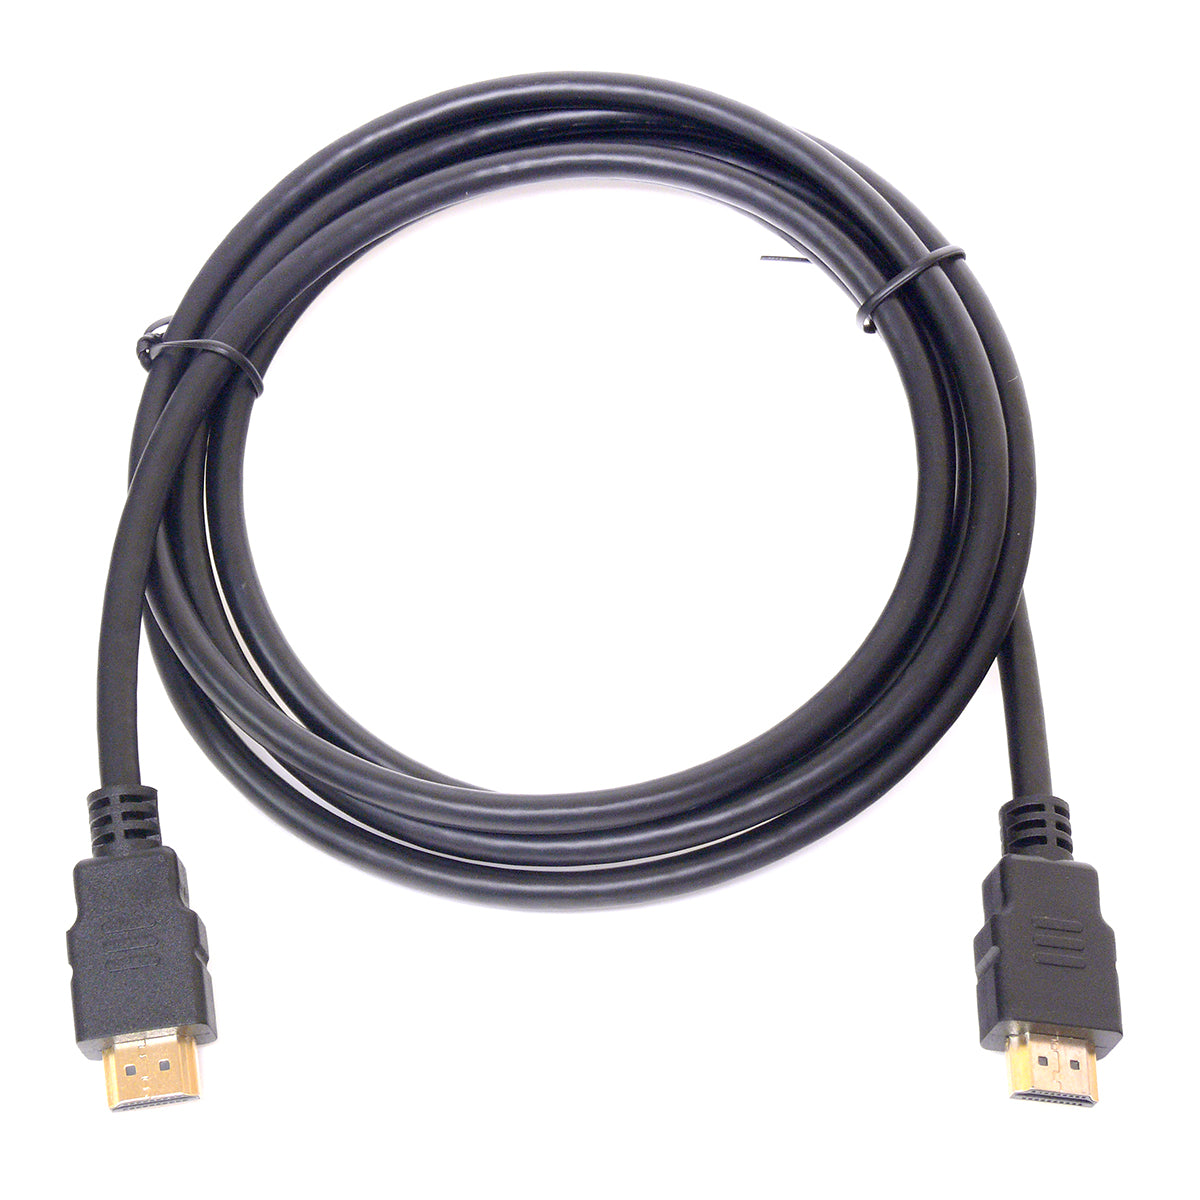 SB-HDMI-2.0-6FT HDMI 2.0 Cables 4K UHD 18 GHz 6 Foot Length